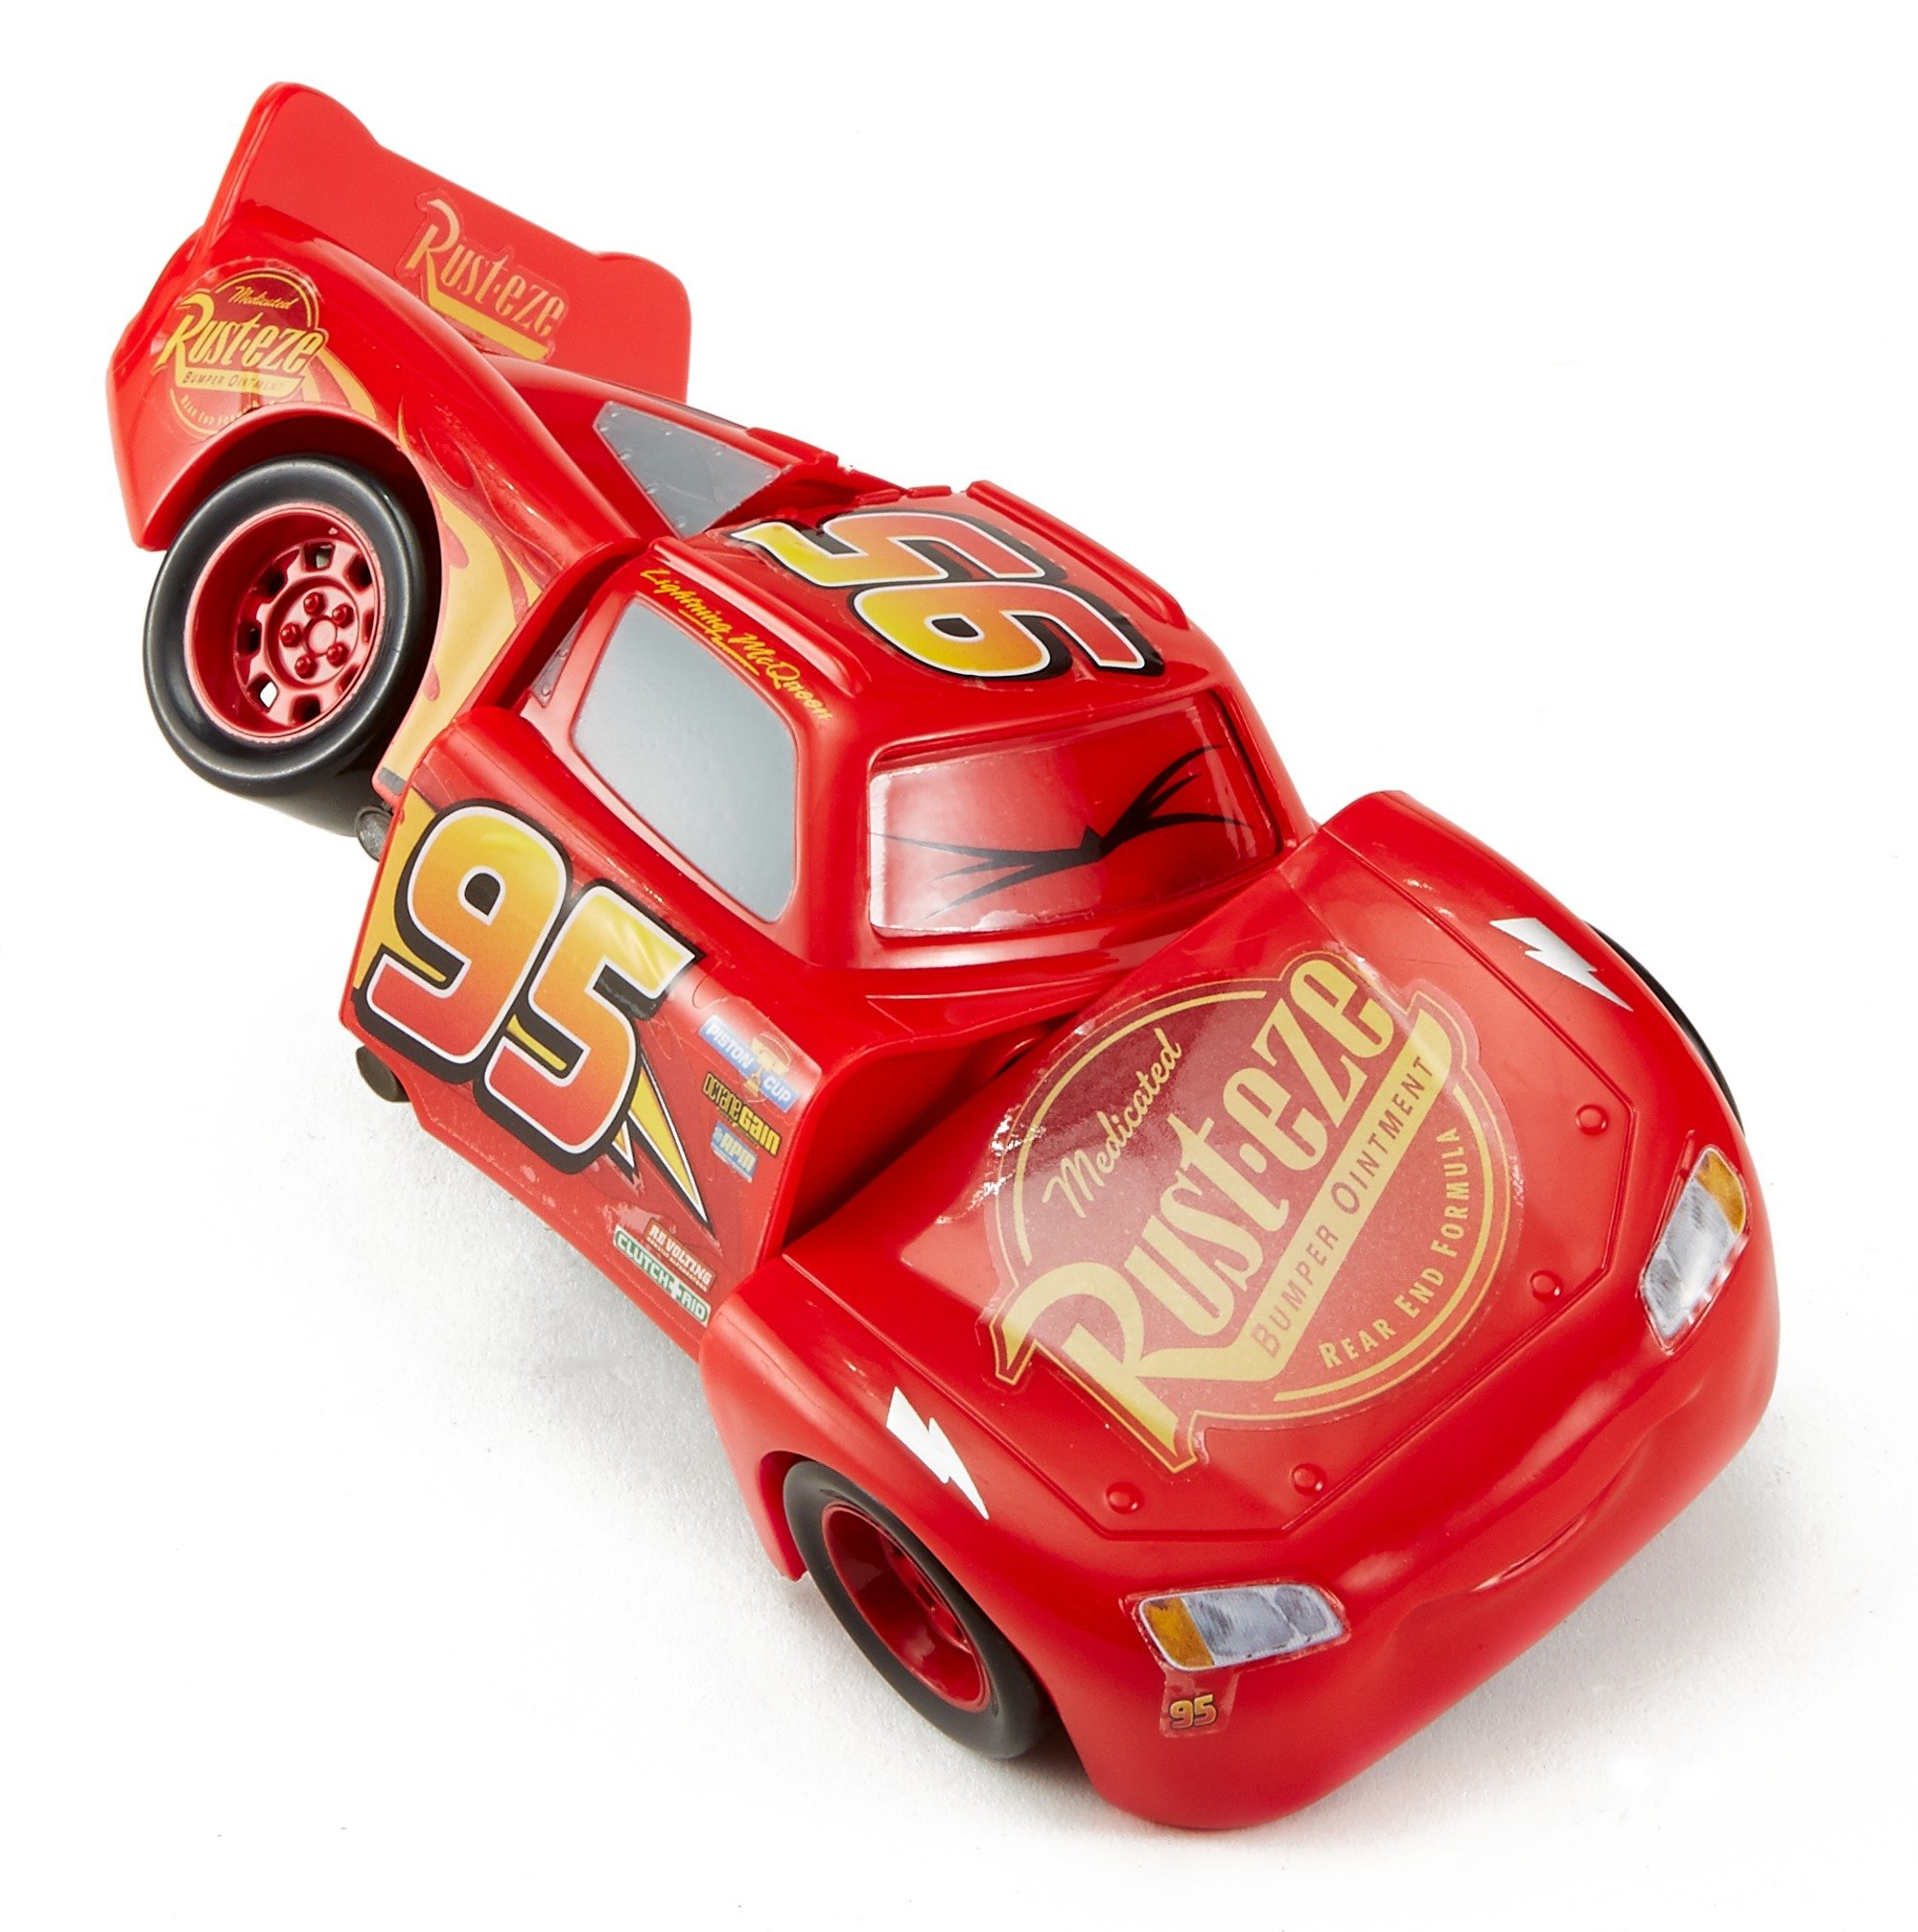 Disney DYW39 Pixar Cars 3 Race and Reck Lightning McQueen Vehicle Disney New Disney Pixar Cars 3 Twisted Crashers vehicle.  His body twists and his eyes change after the crash!  Restore him to his former; pre smash glory by simply twisting the car back into place! 10